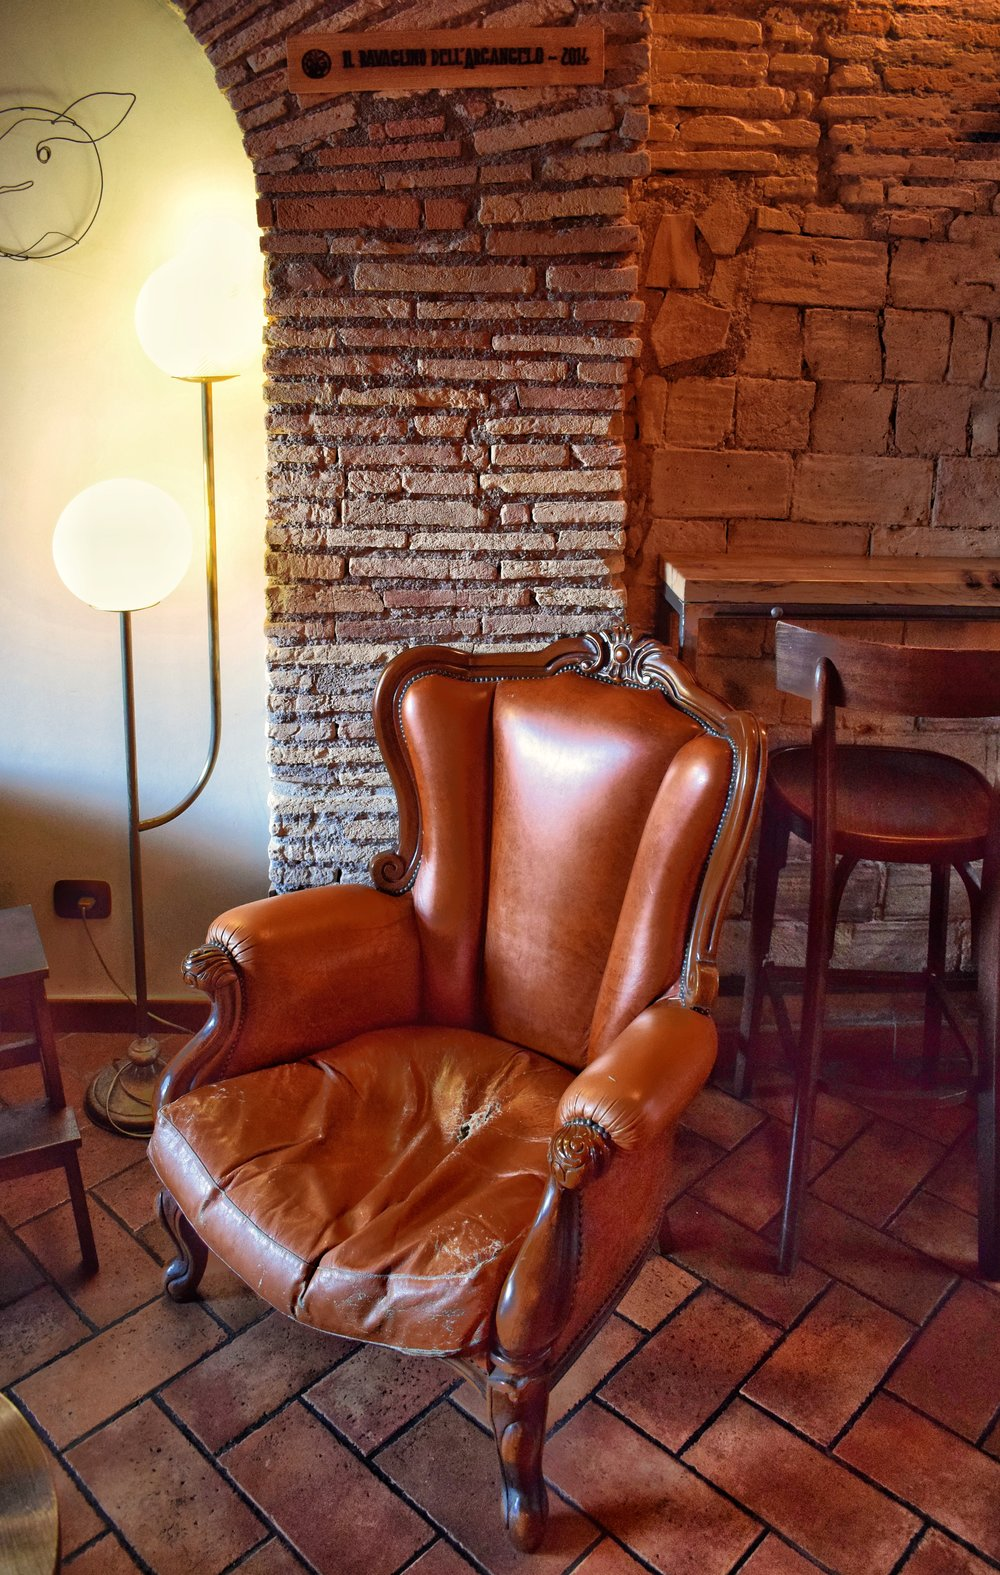 ArmChair-Rome-Brown-Leather-Book